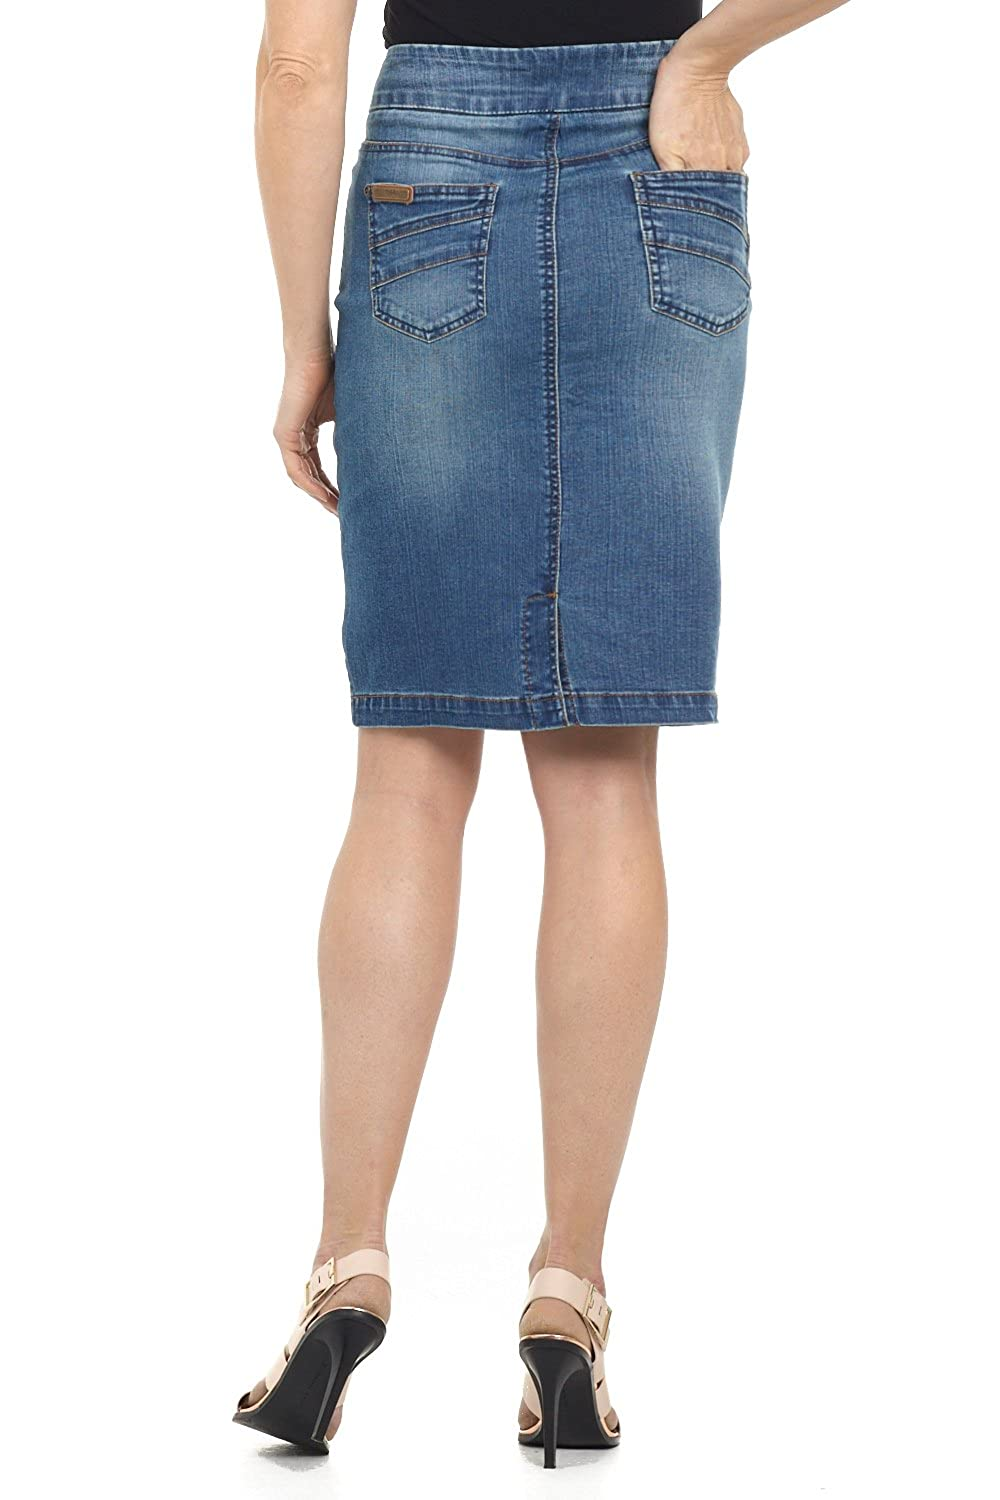 8feedf2a6149 Rekucci Jeans Women's Ease in to Comfort Fit Pull-on Stretch Denim Skirt at  Amazon Women's Clothing store: